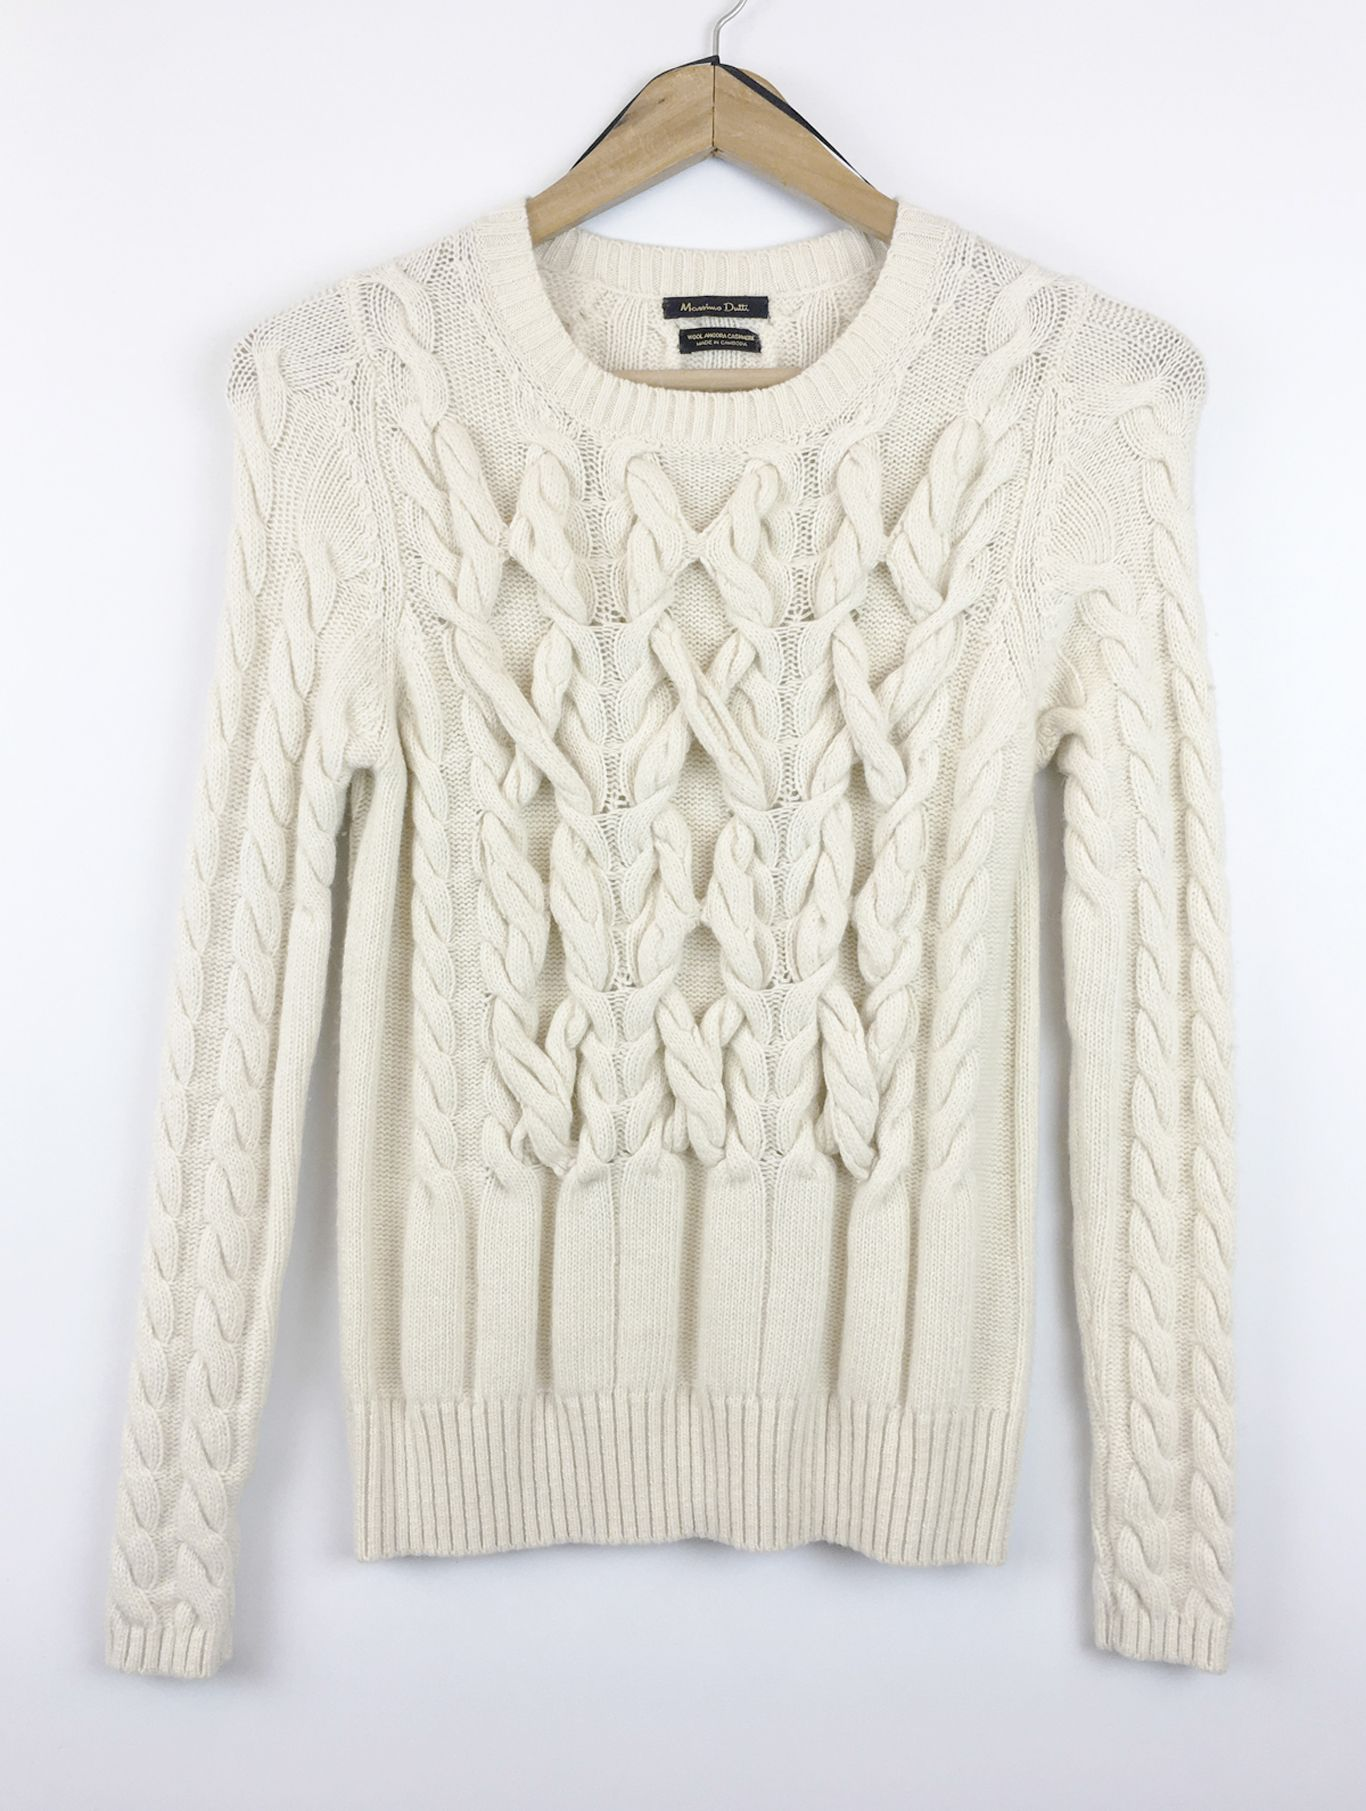 Big Cable knitted sweater - Paliqu | Knits that I love | Pinterest